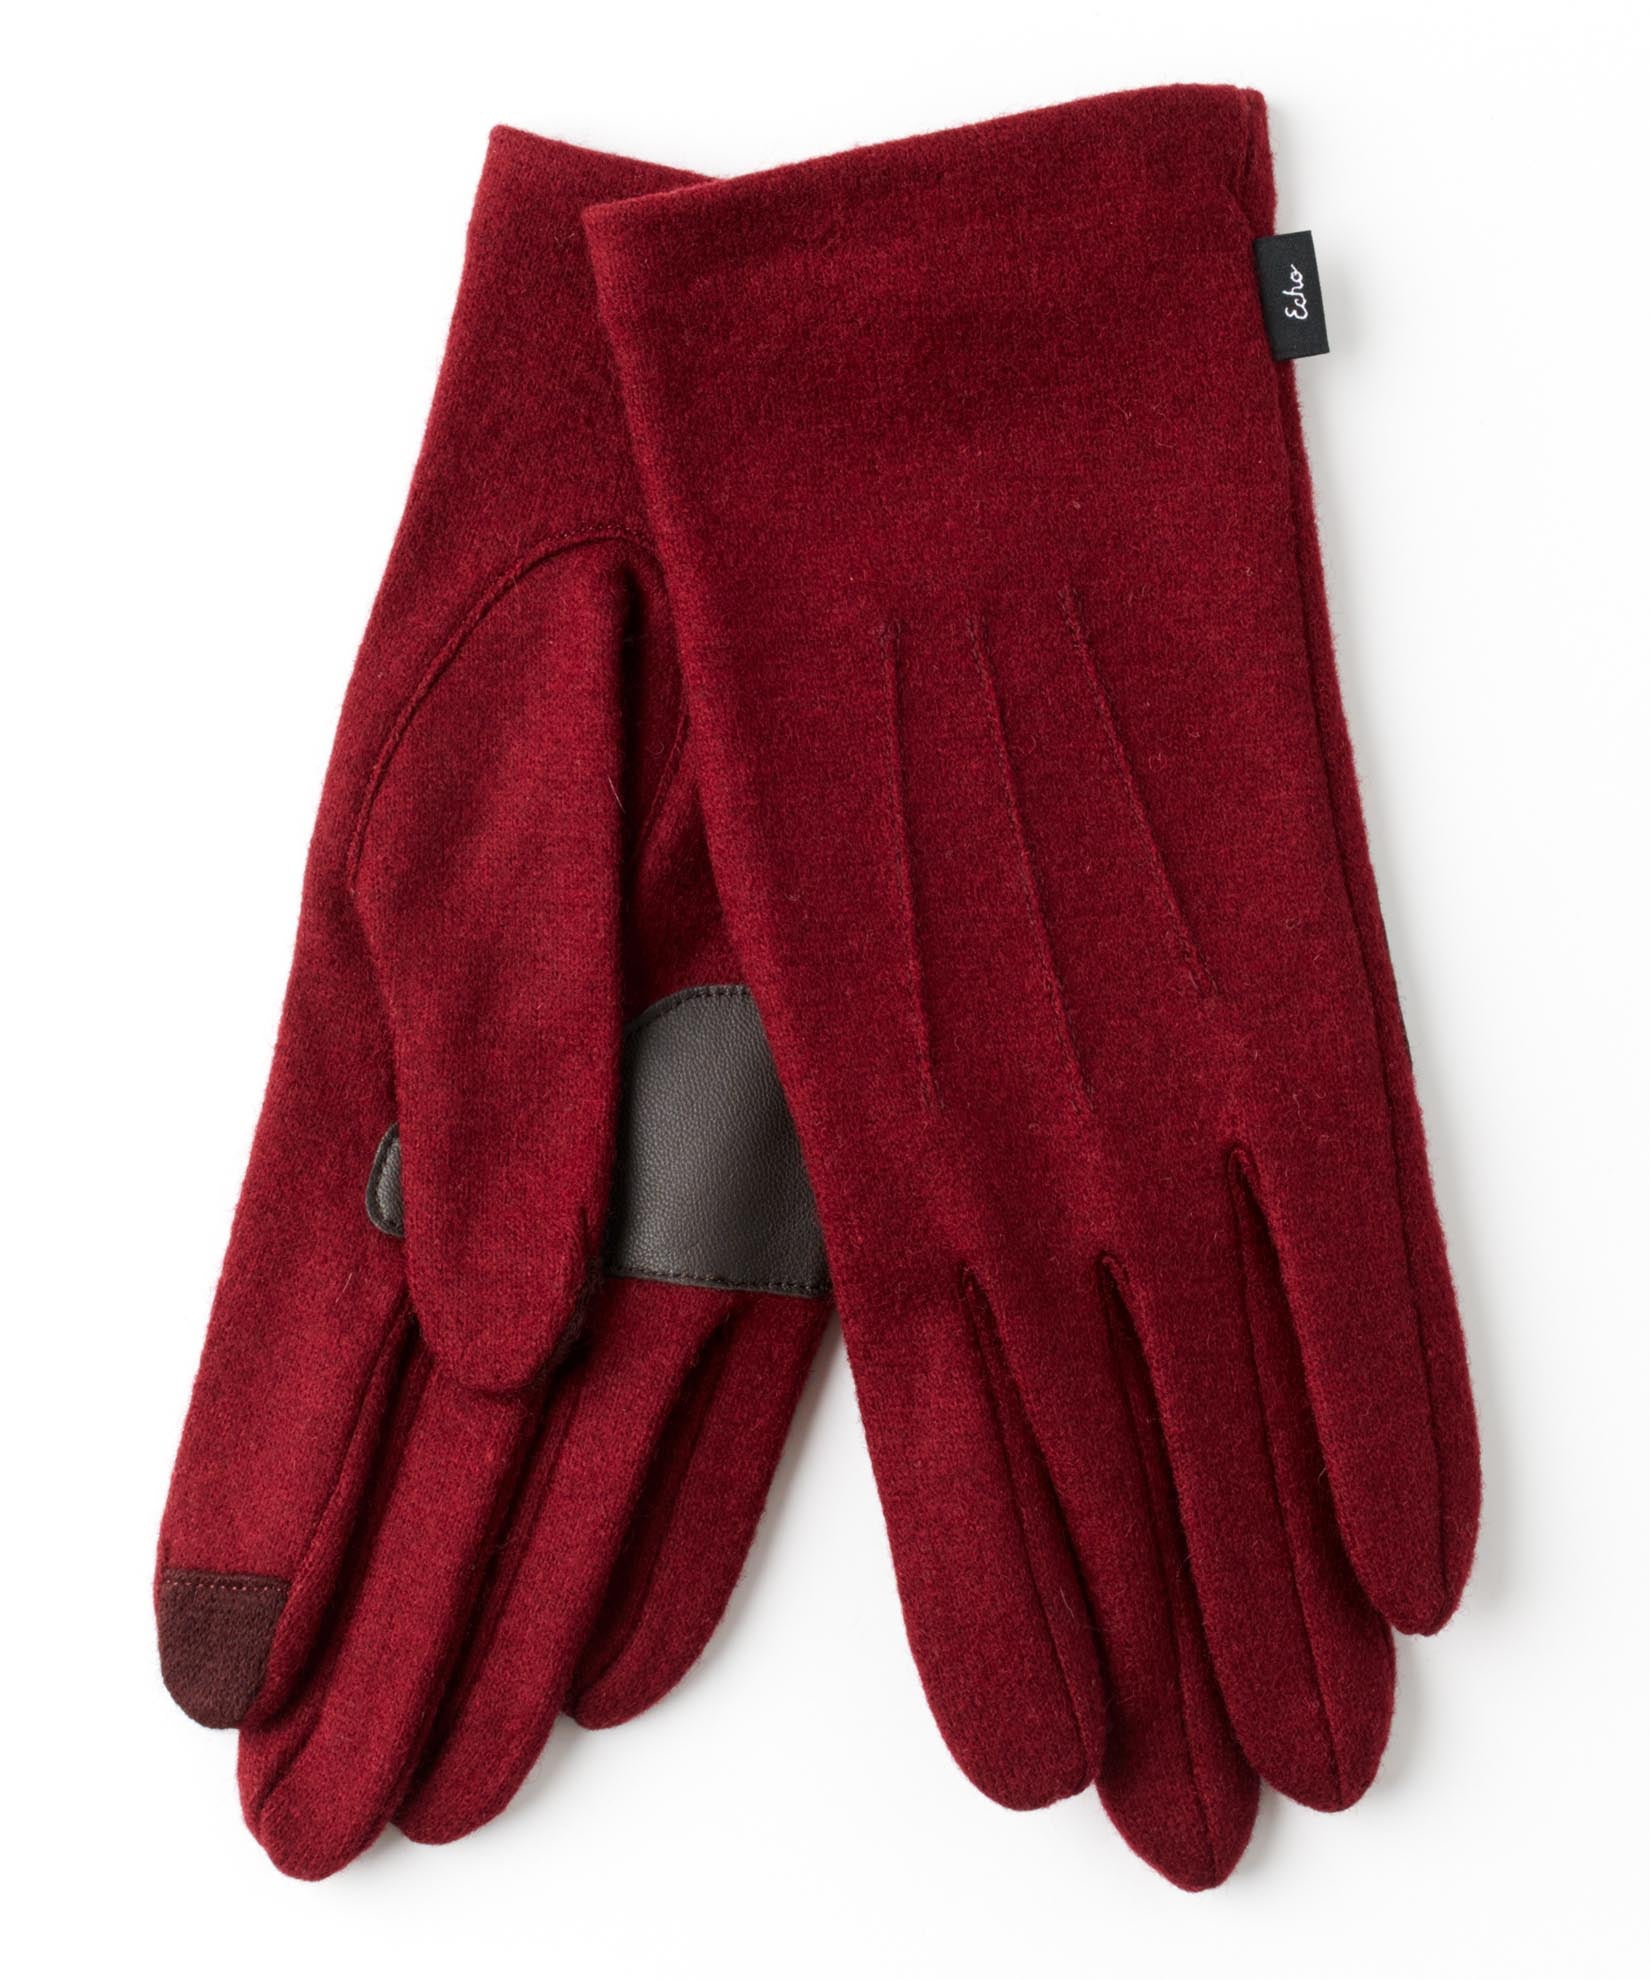 Port - Classic Touch Glove